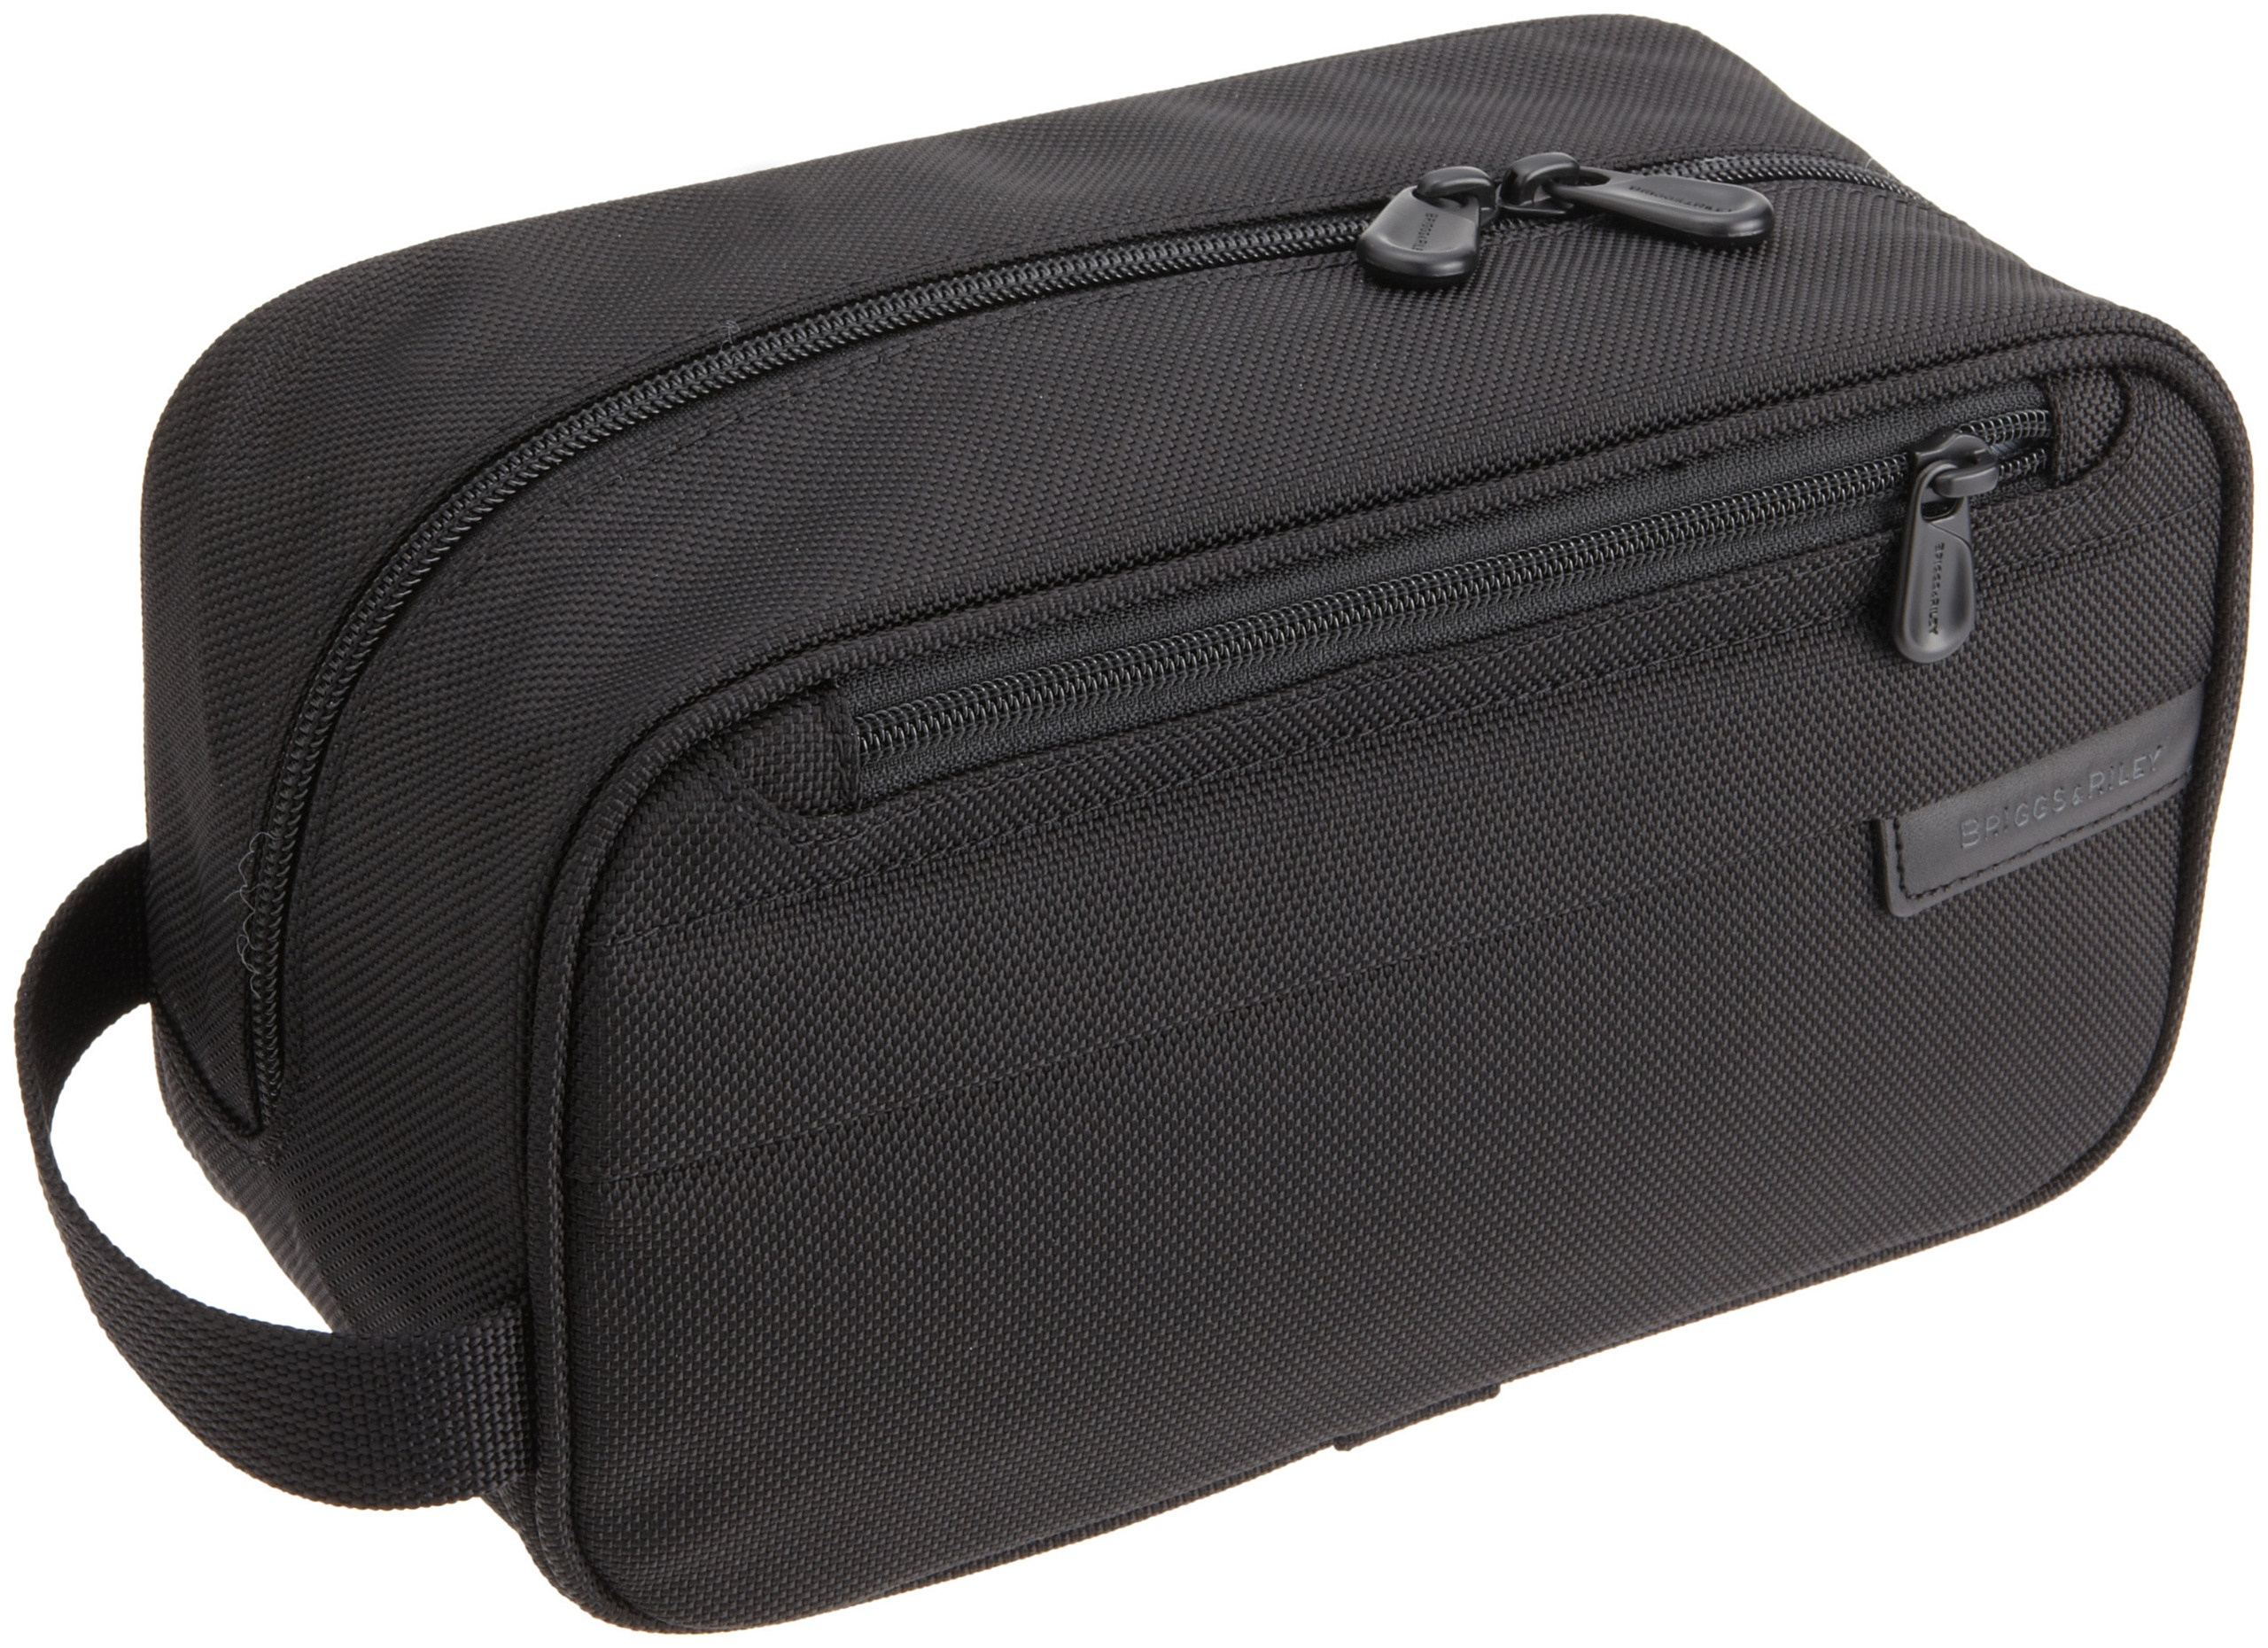 Briggs & Riley Baseline Classic Toiletry Kit, Black by Briggs & Riley (Image #2)